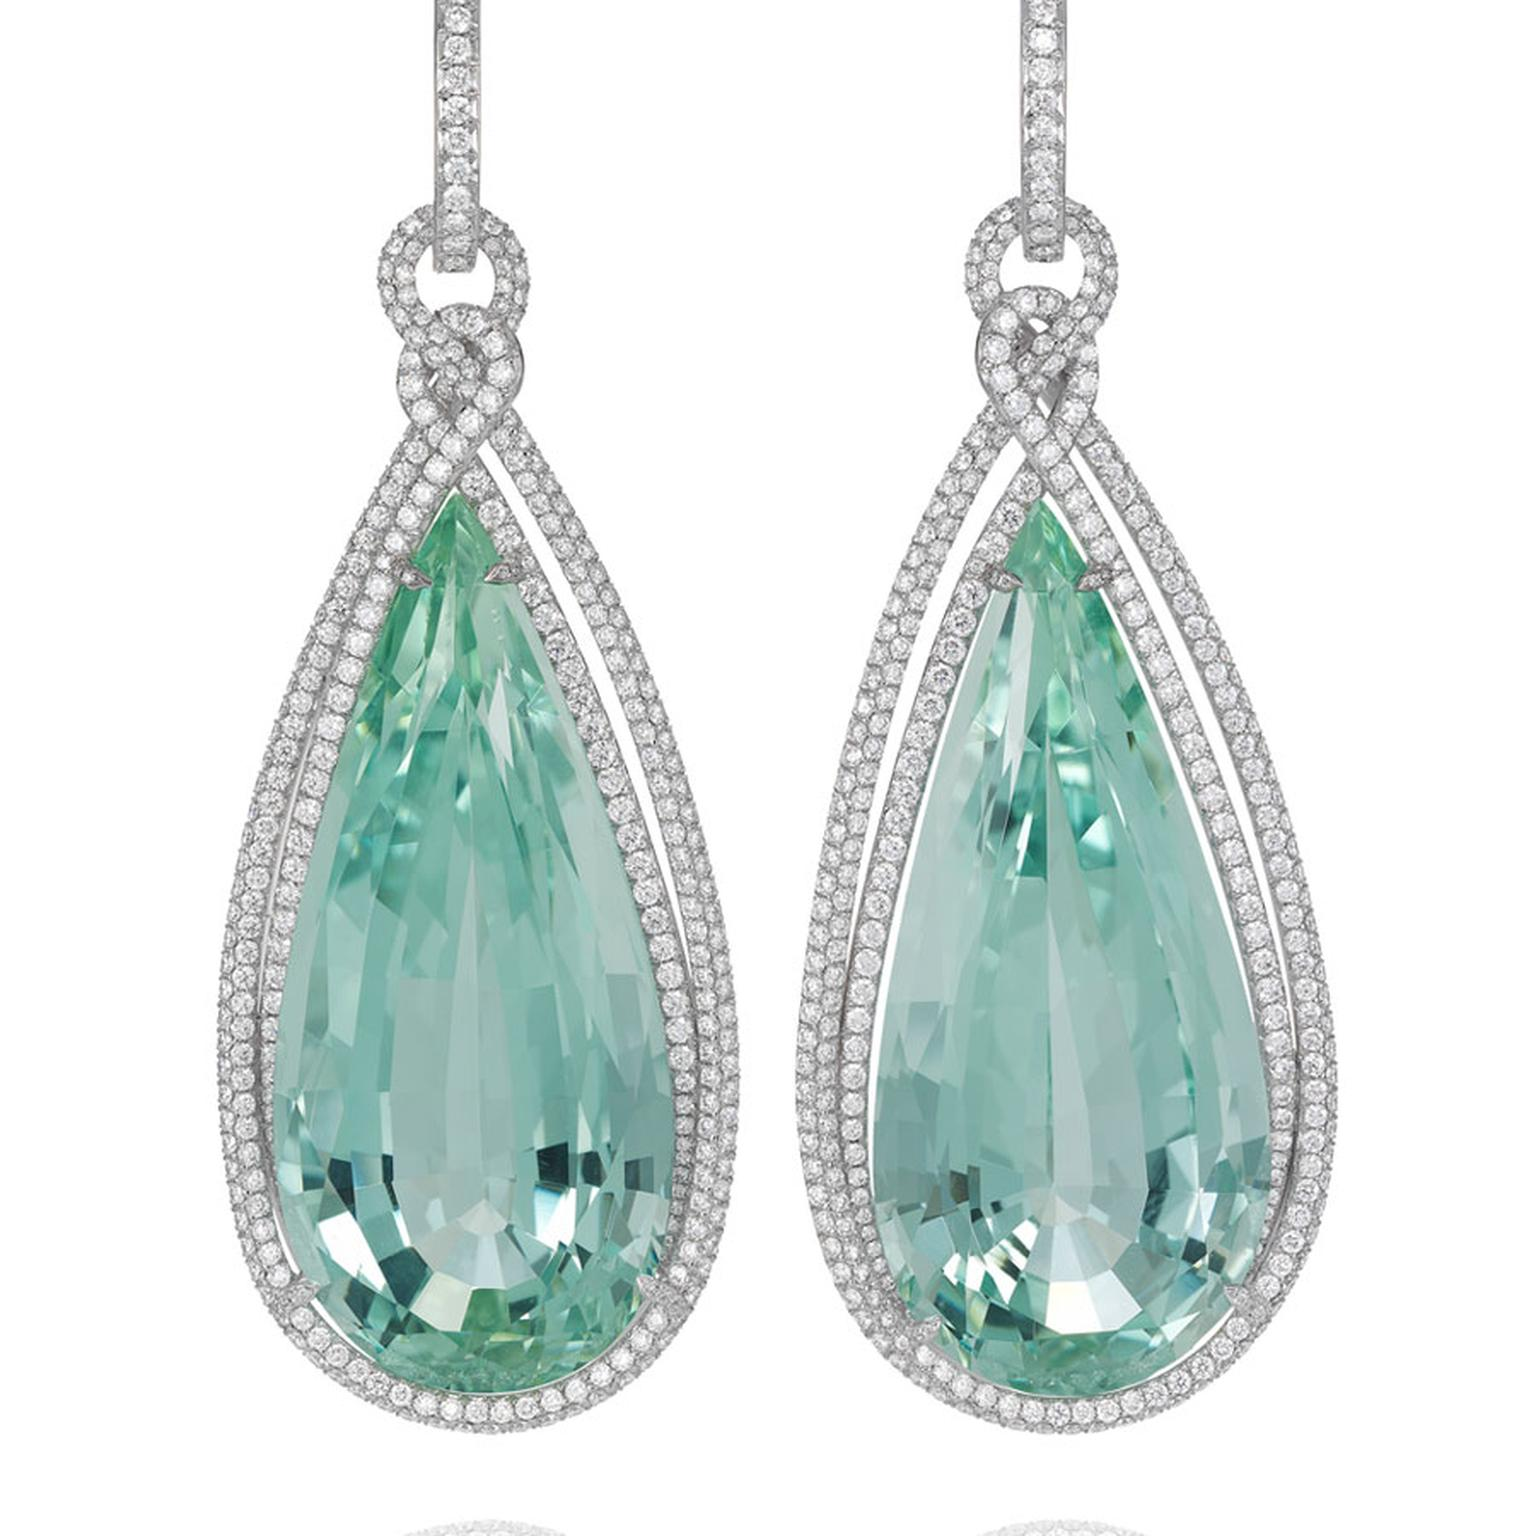 Chopard Chocolate Temptations Earrings from the Temptations collection, suspending two pear shaped green beryls paved with diamonds and set in white gold POA